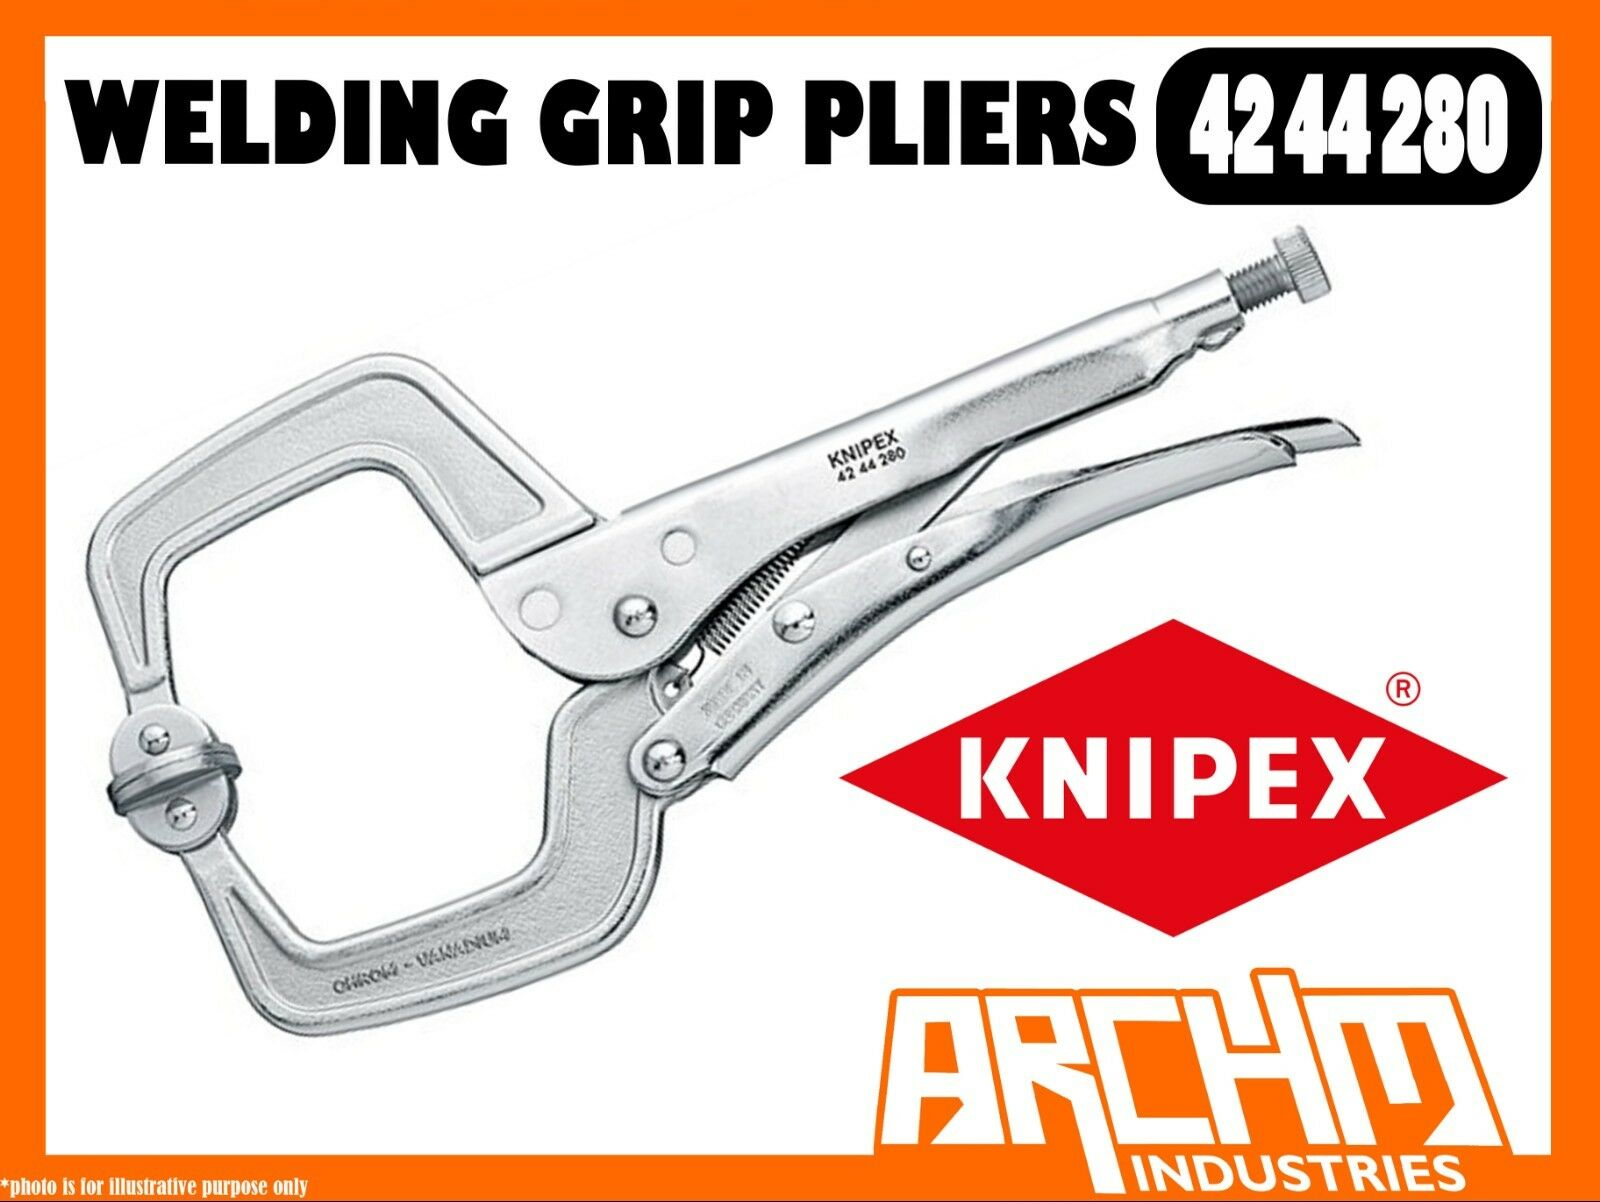 KNIPEX 4244280 - WELDING GRIP PLIERS - 280MM HEAVY DUTY GRIPPING ADJUSTMENT